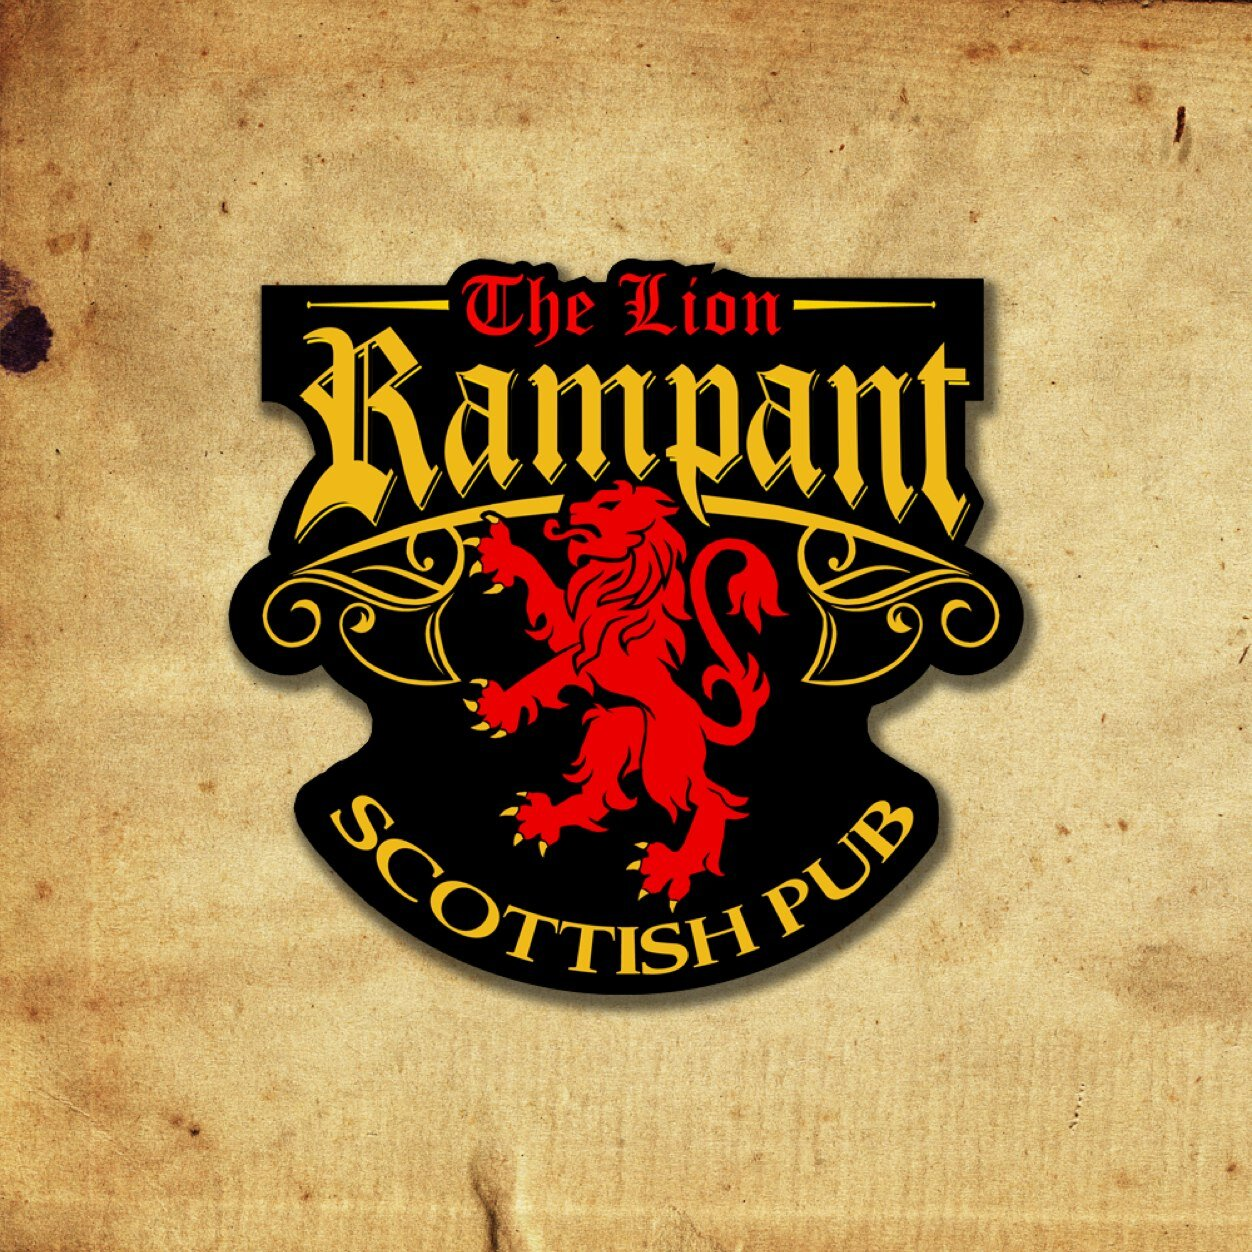 6be33a3e30bf1 The Lion Rampant Pub on Twitter: